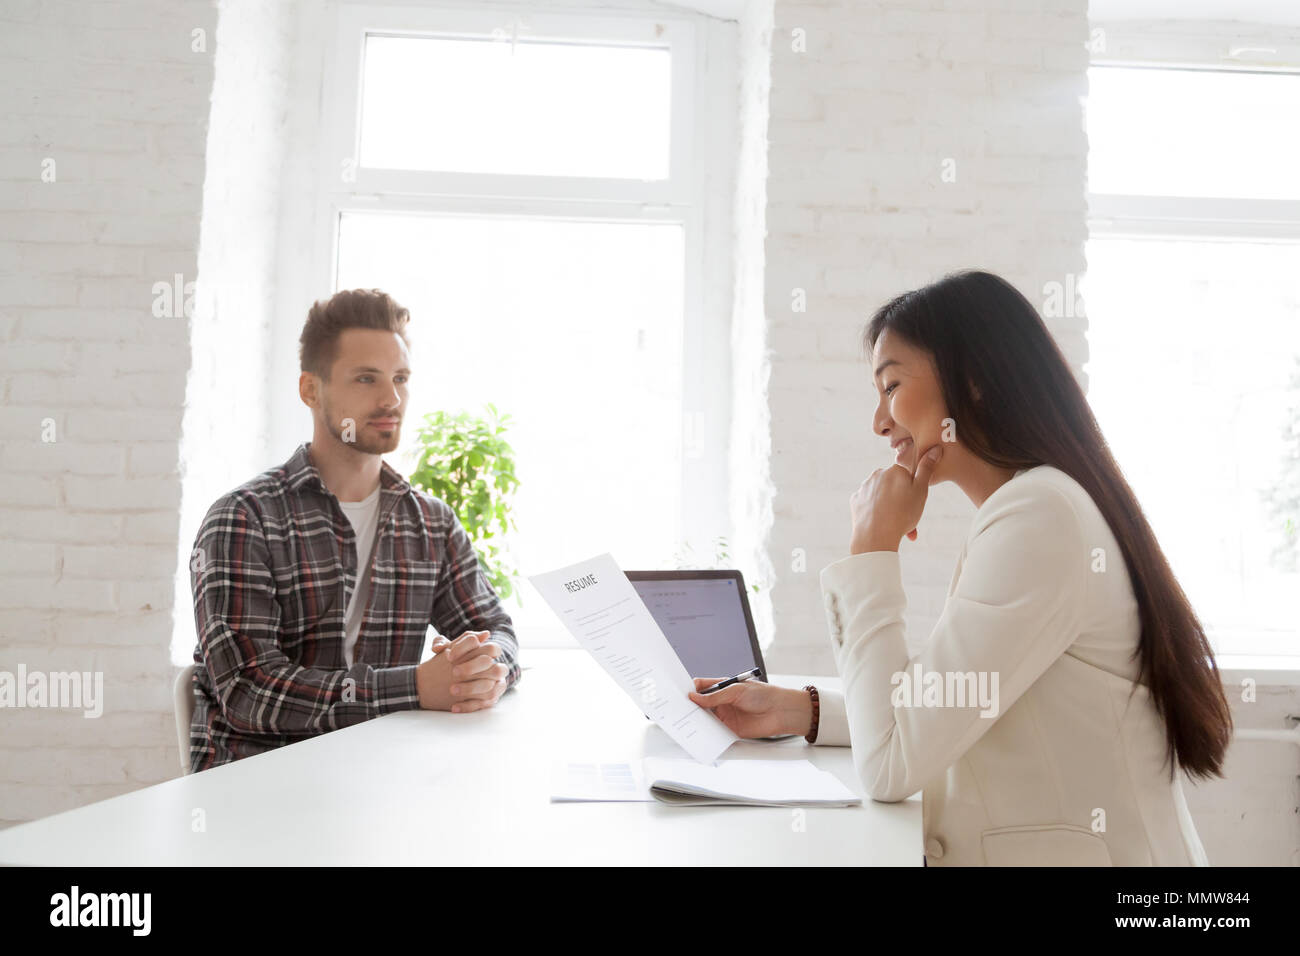 Smiling hr reading resume at job interview with serious candidat - Stock Image